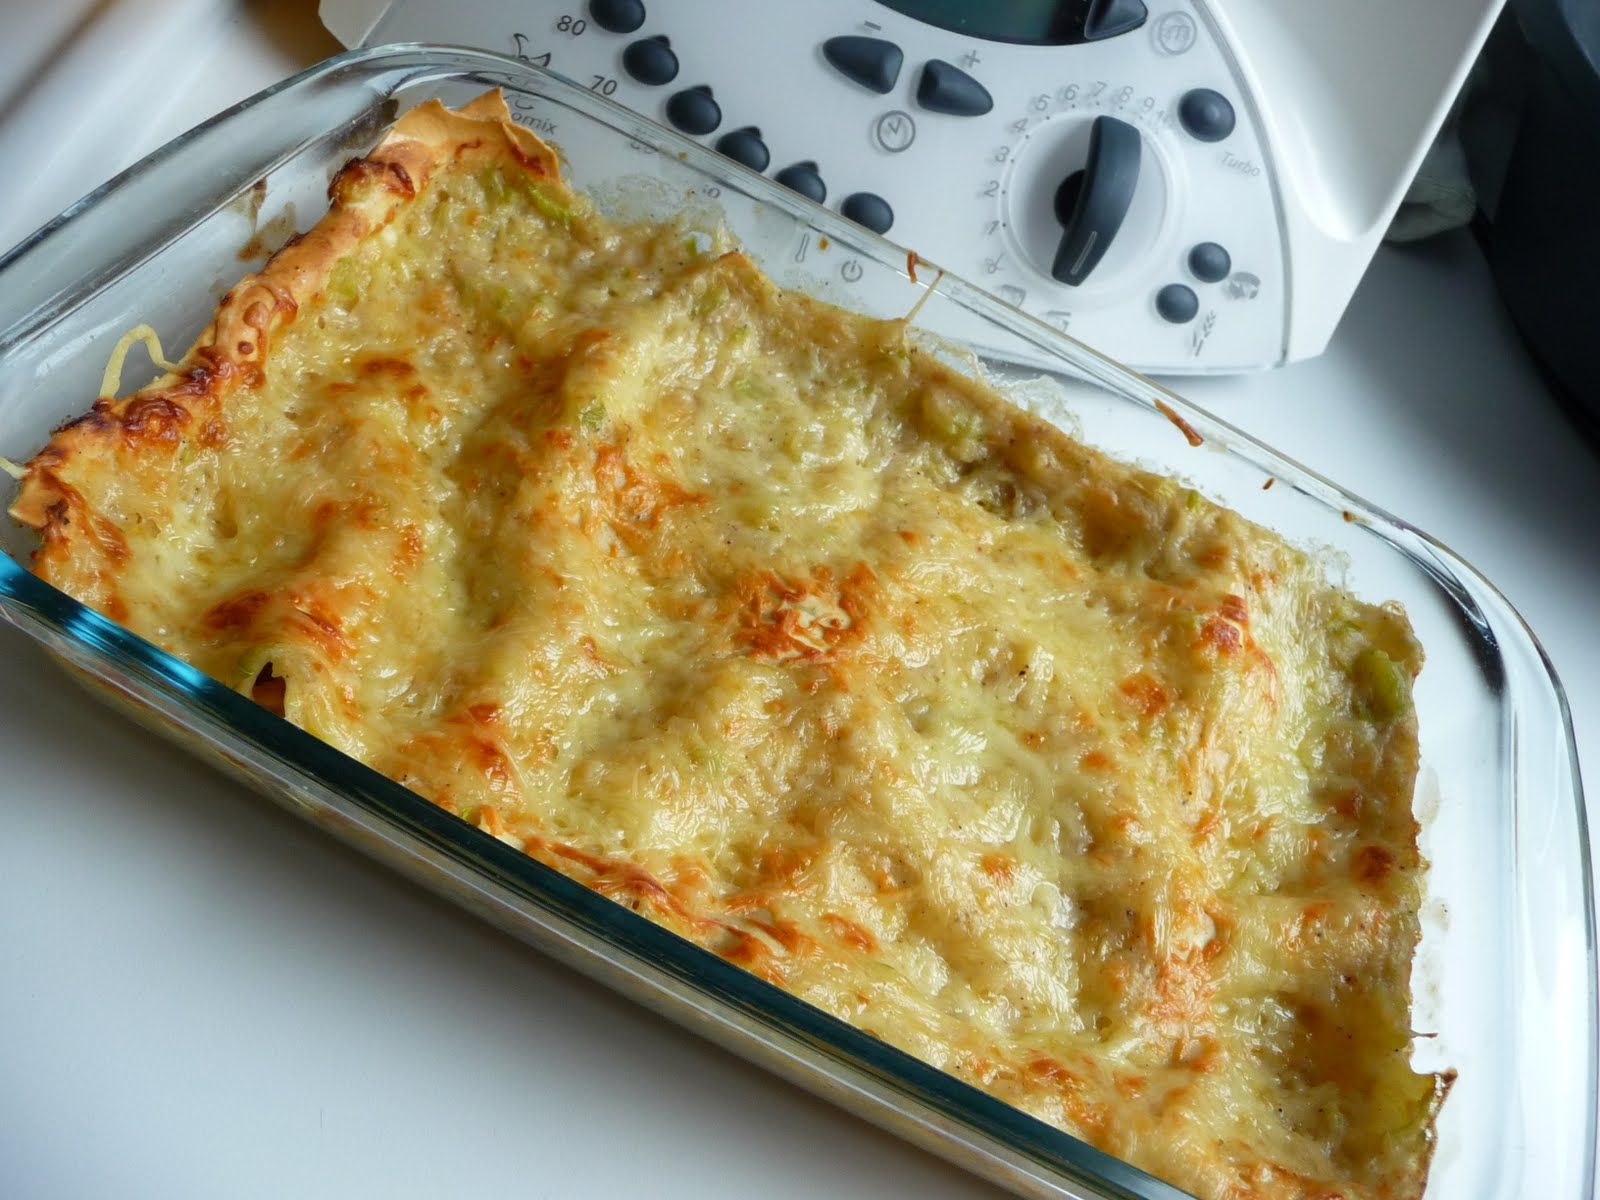 Papilles on off lasagnes thon courgettes au thermomix - Flan de courgettes au thermomix ...